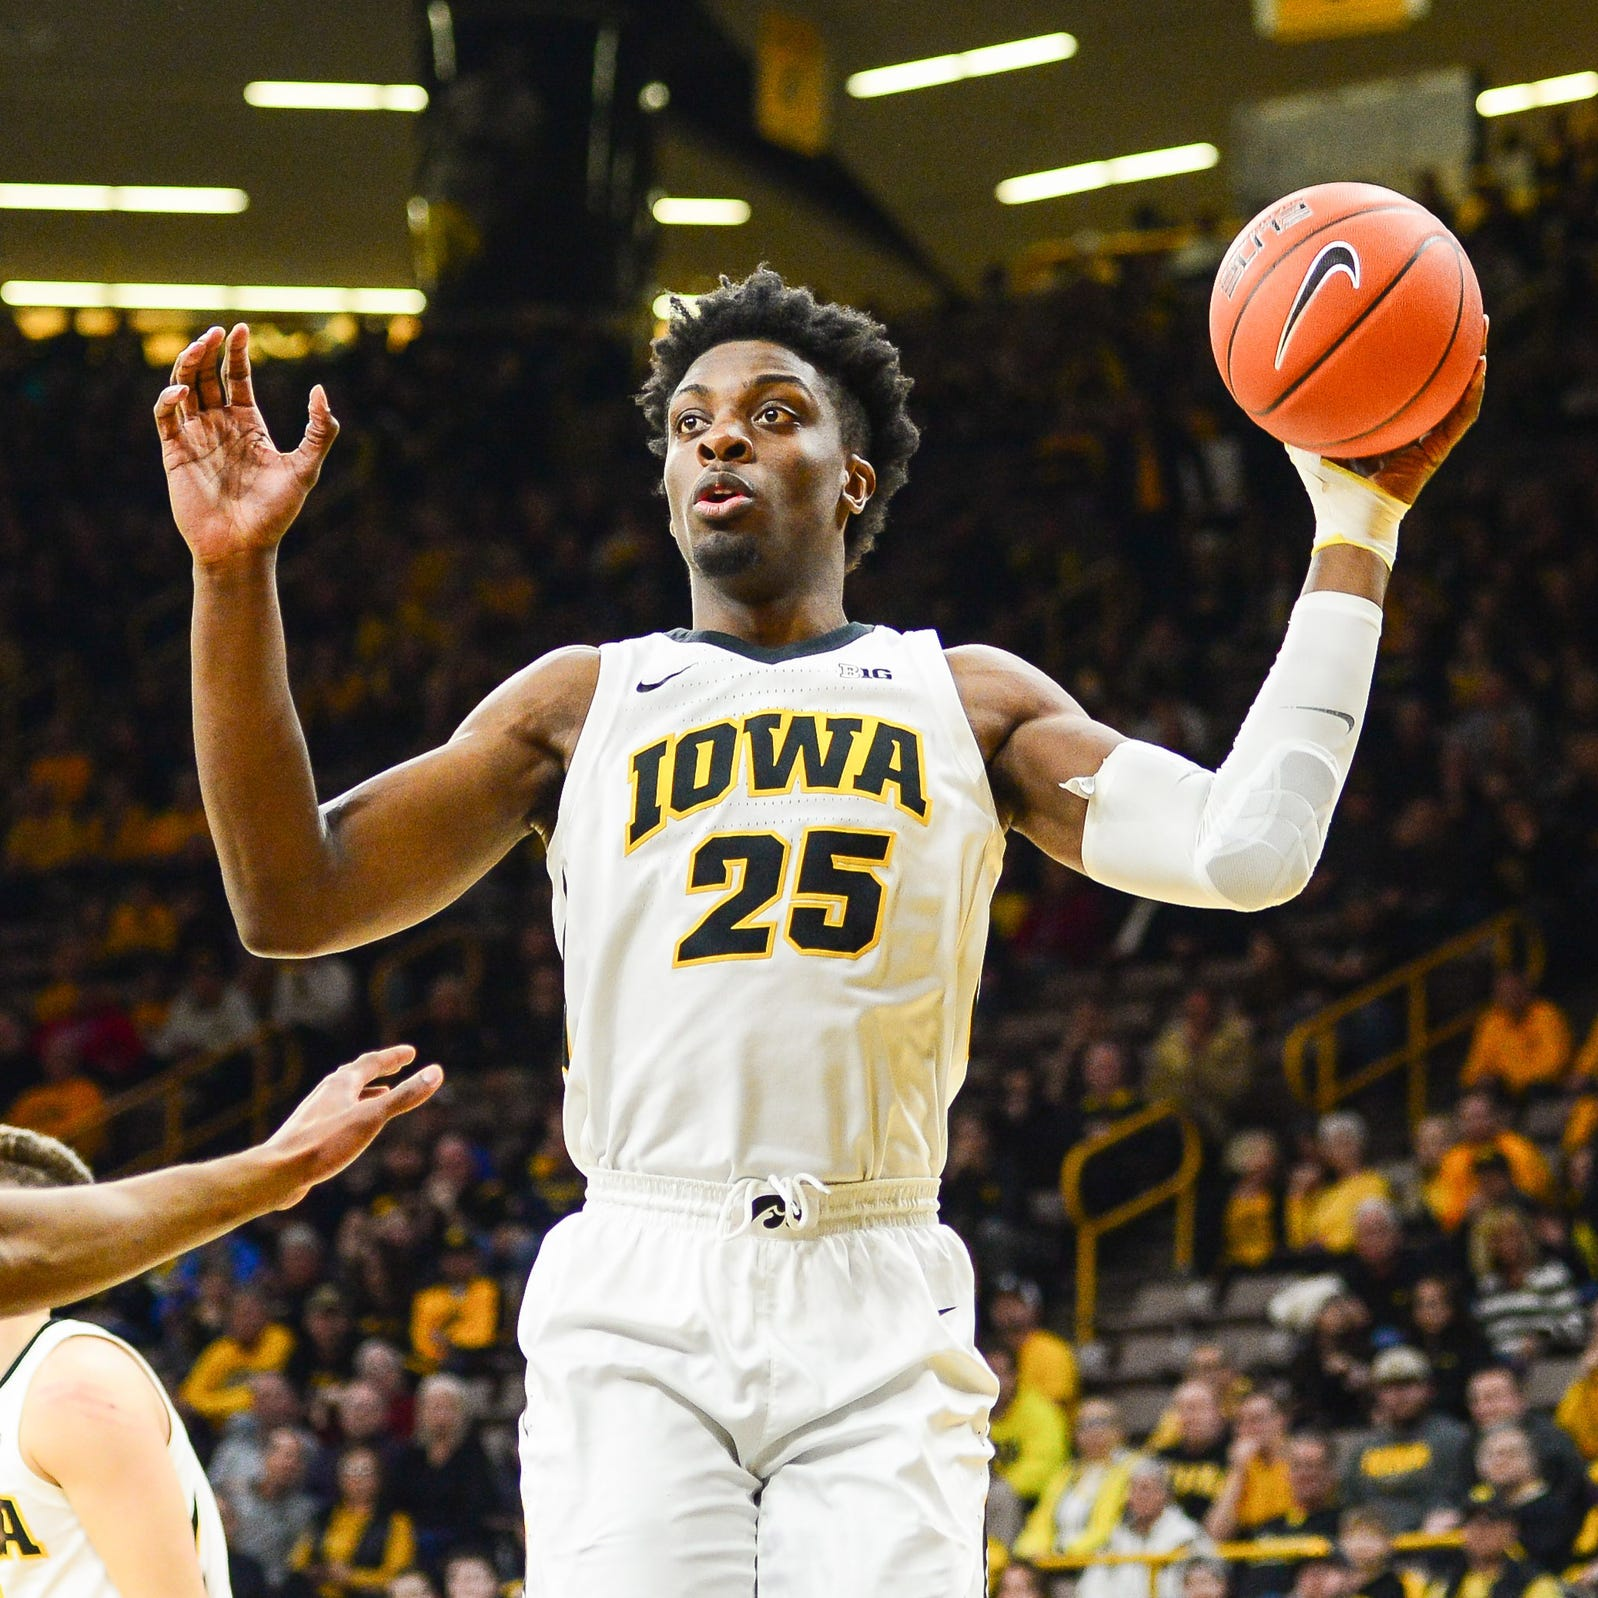 Michigan basketball vs. Iowa: Scouting report, prediction